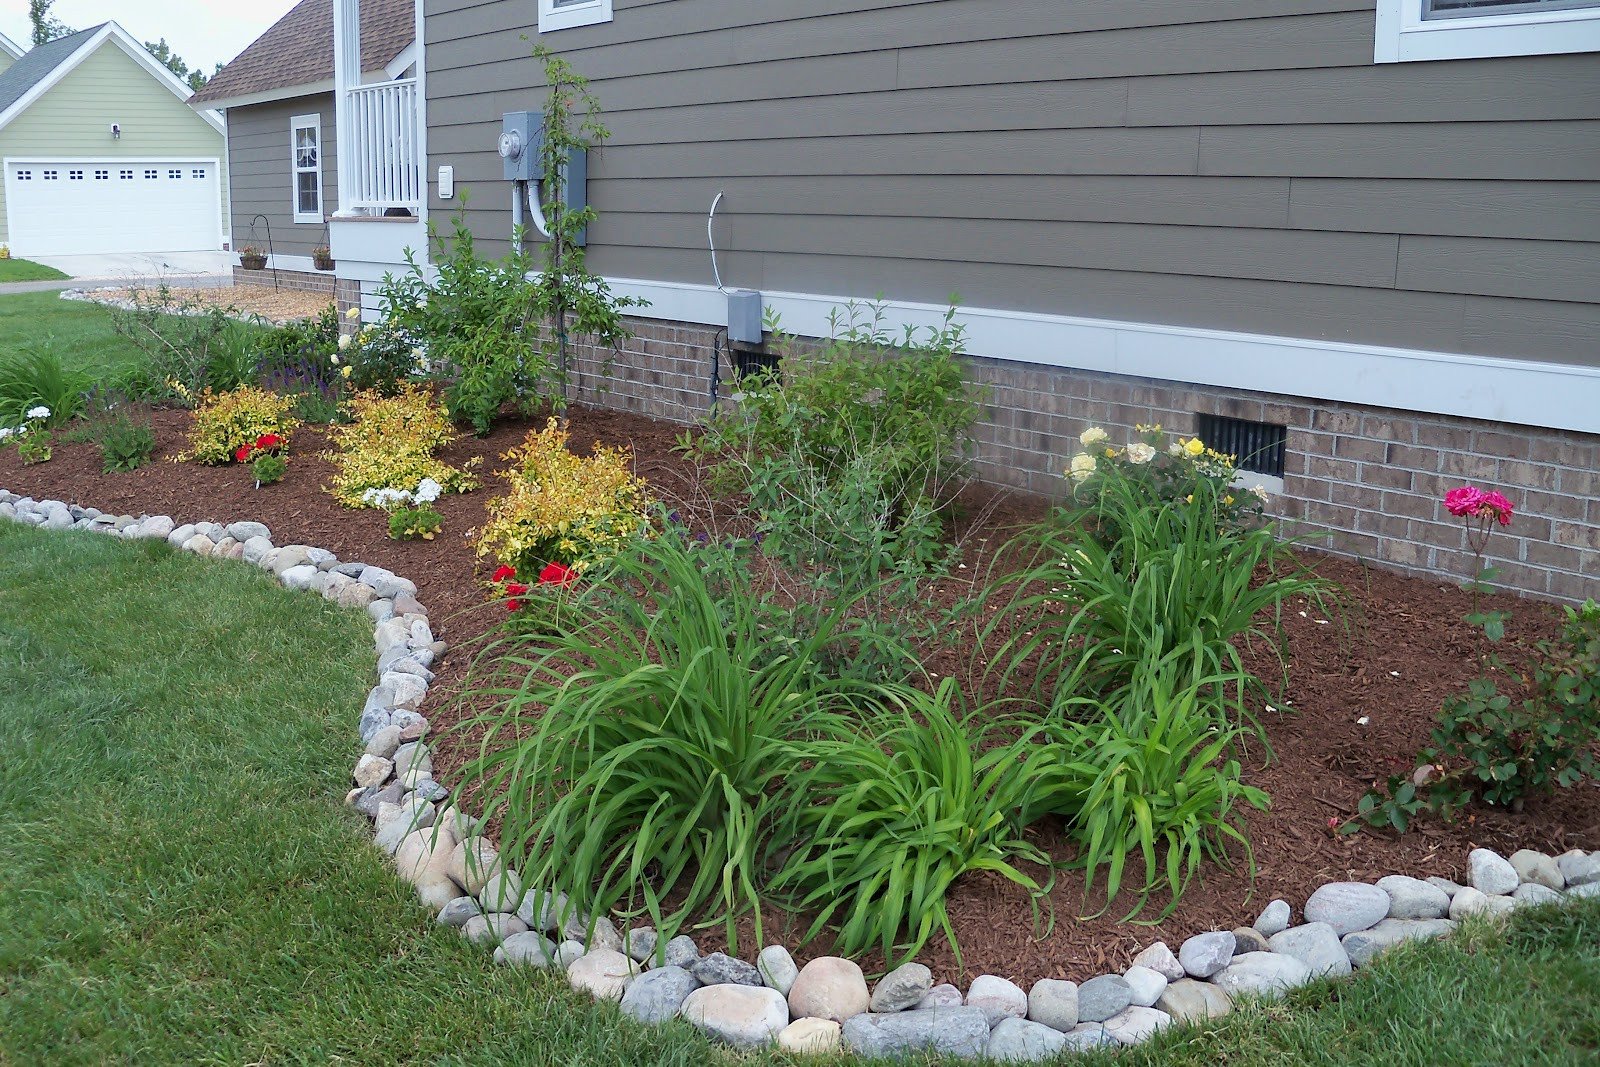 Best ideas about Landscape Edging Stones . Save or Pin Edging design ideas Now.